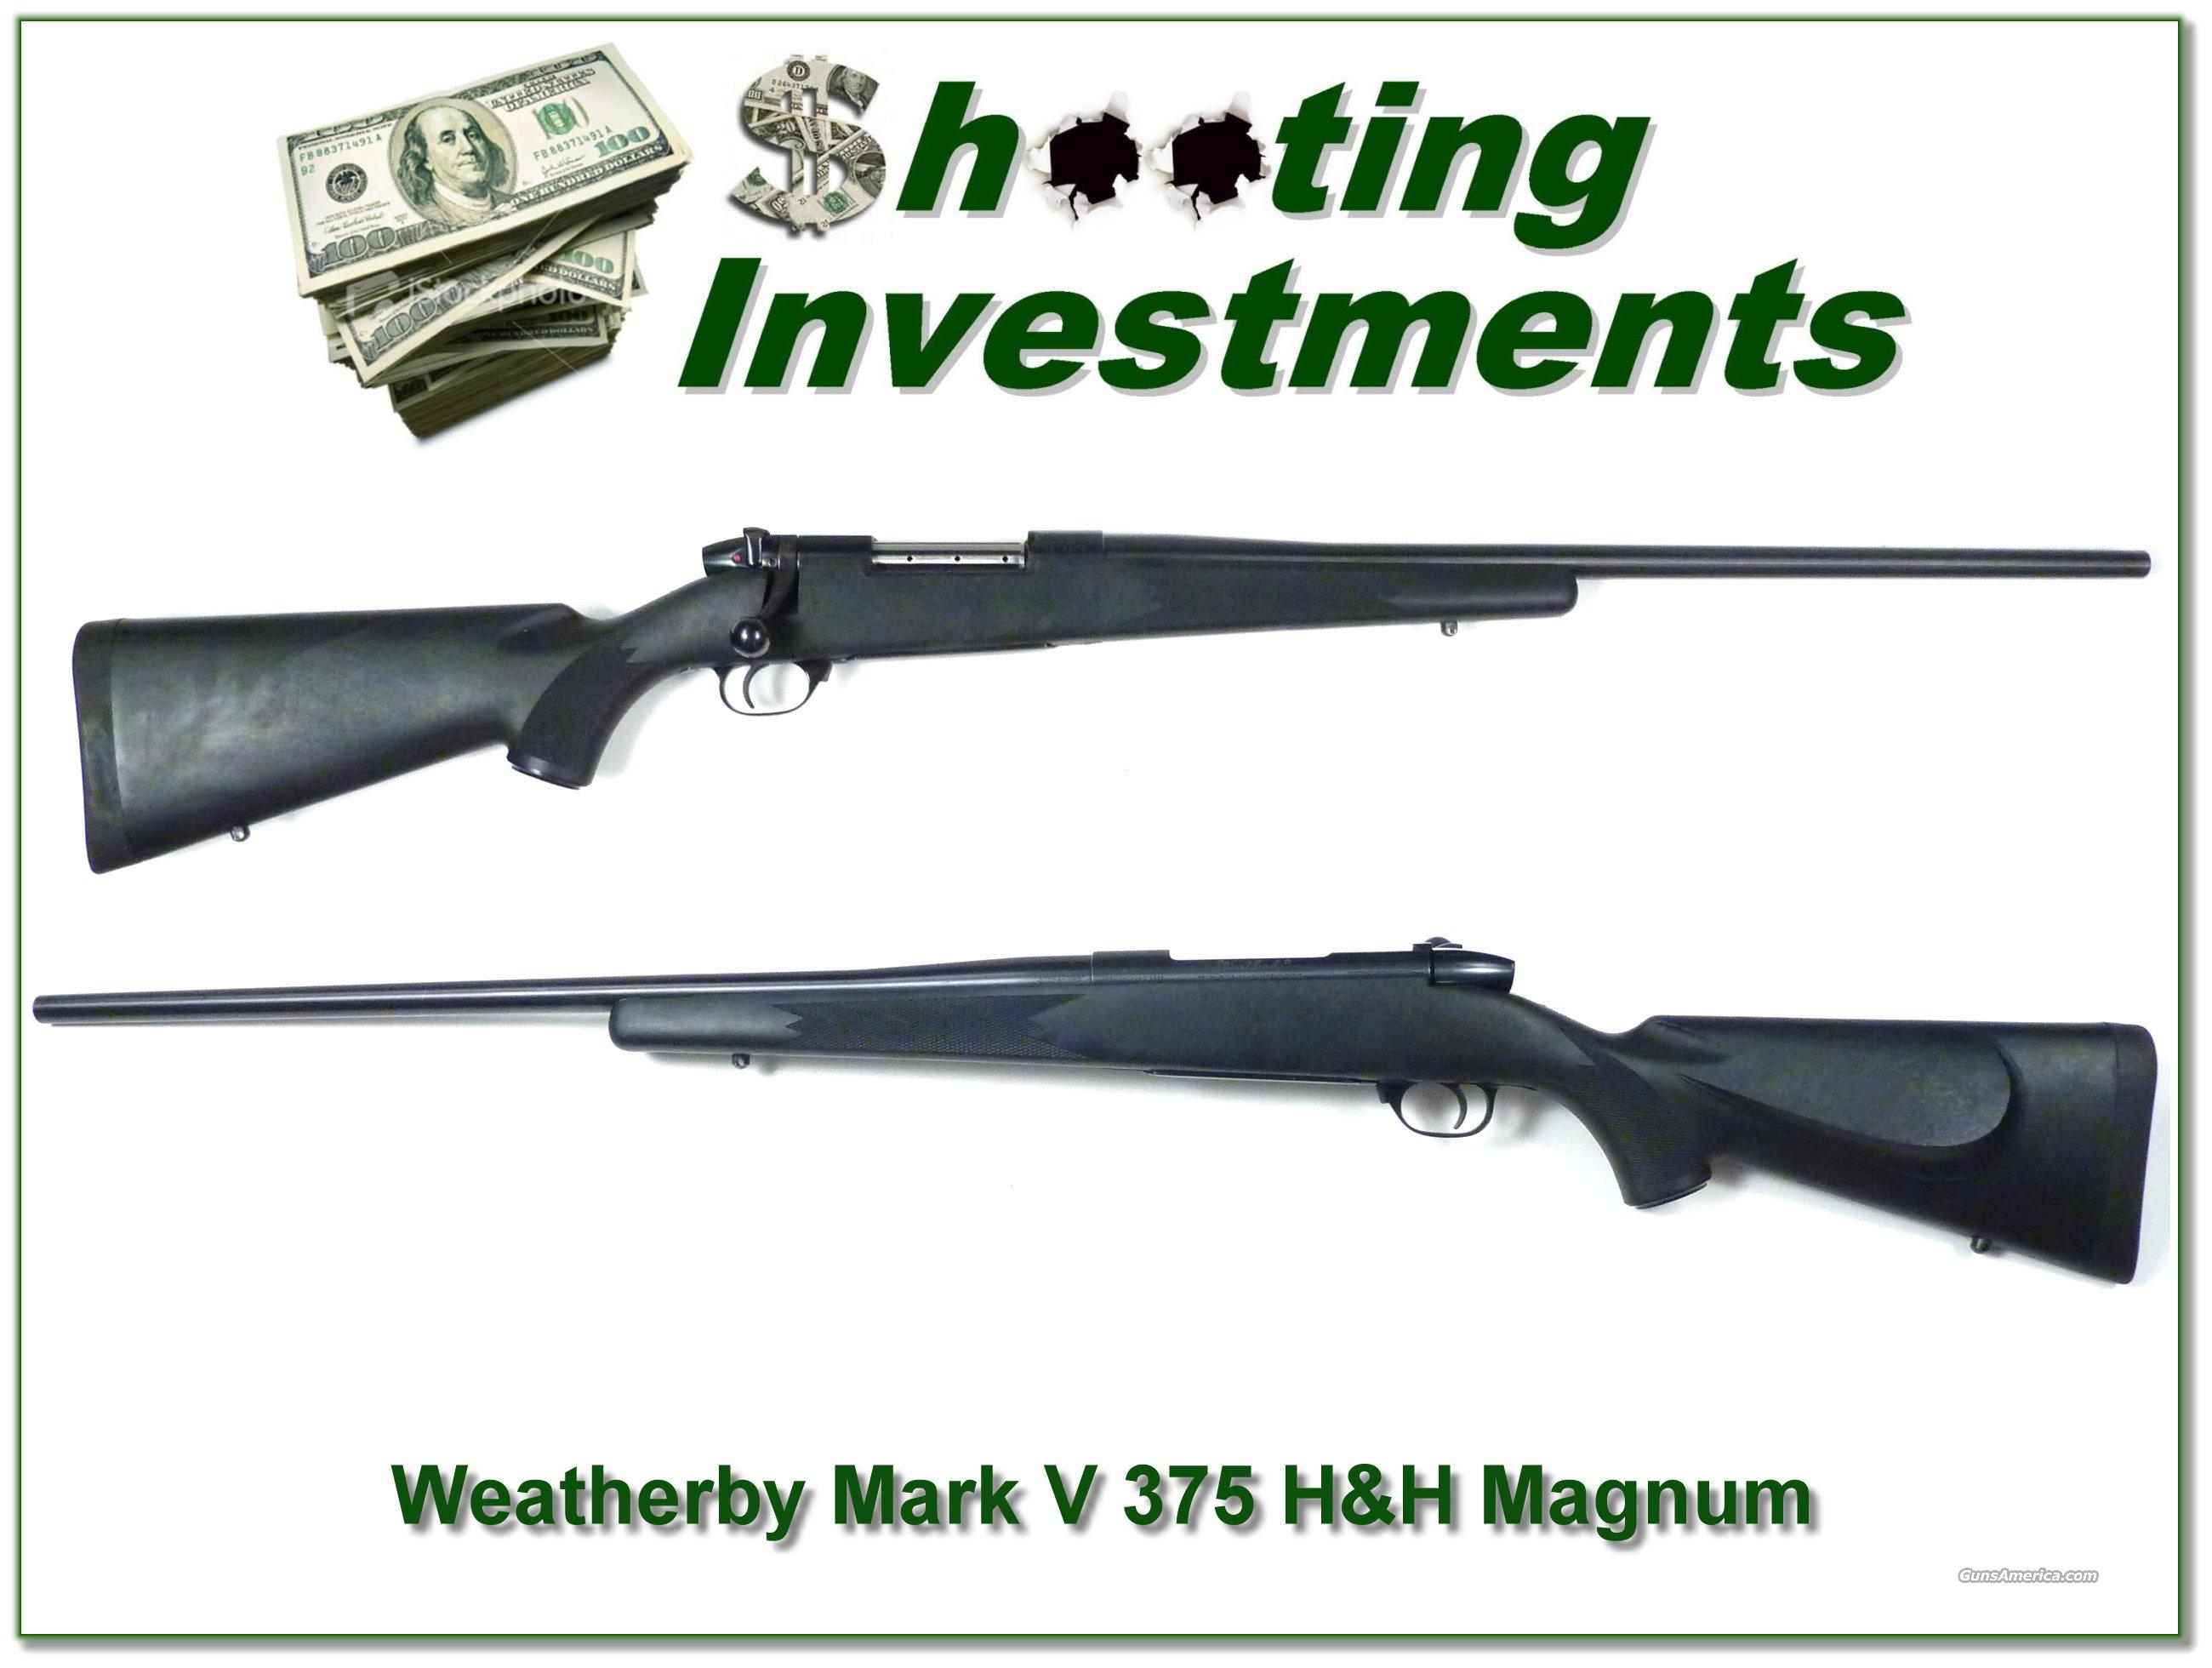 Weatherby Mark V 375 H&H Magnum  Guns > Rifles > Weatherby Rifles > Sporting